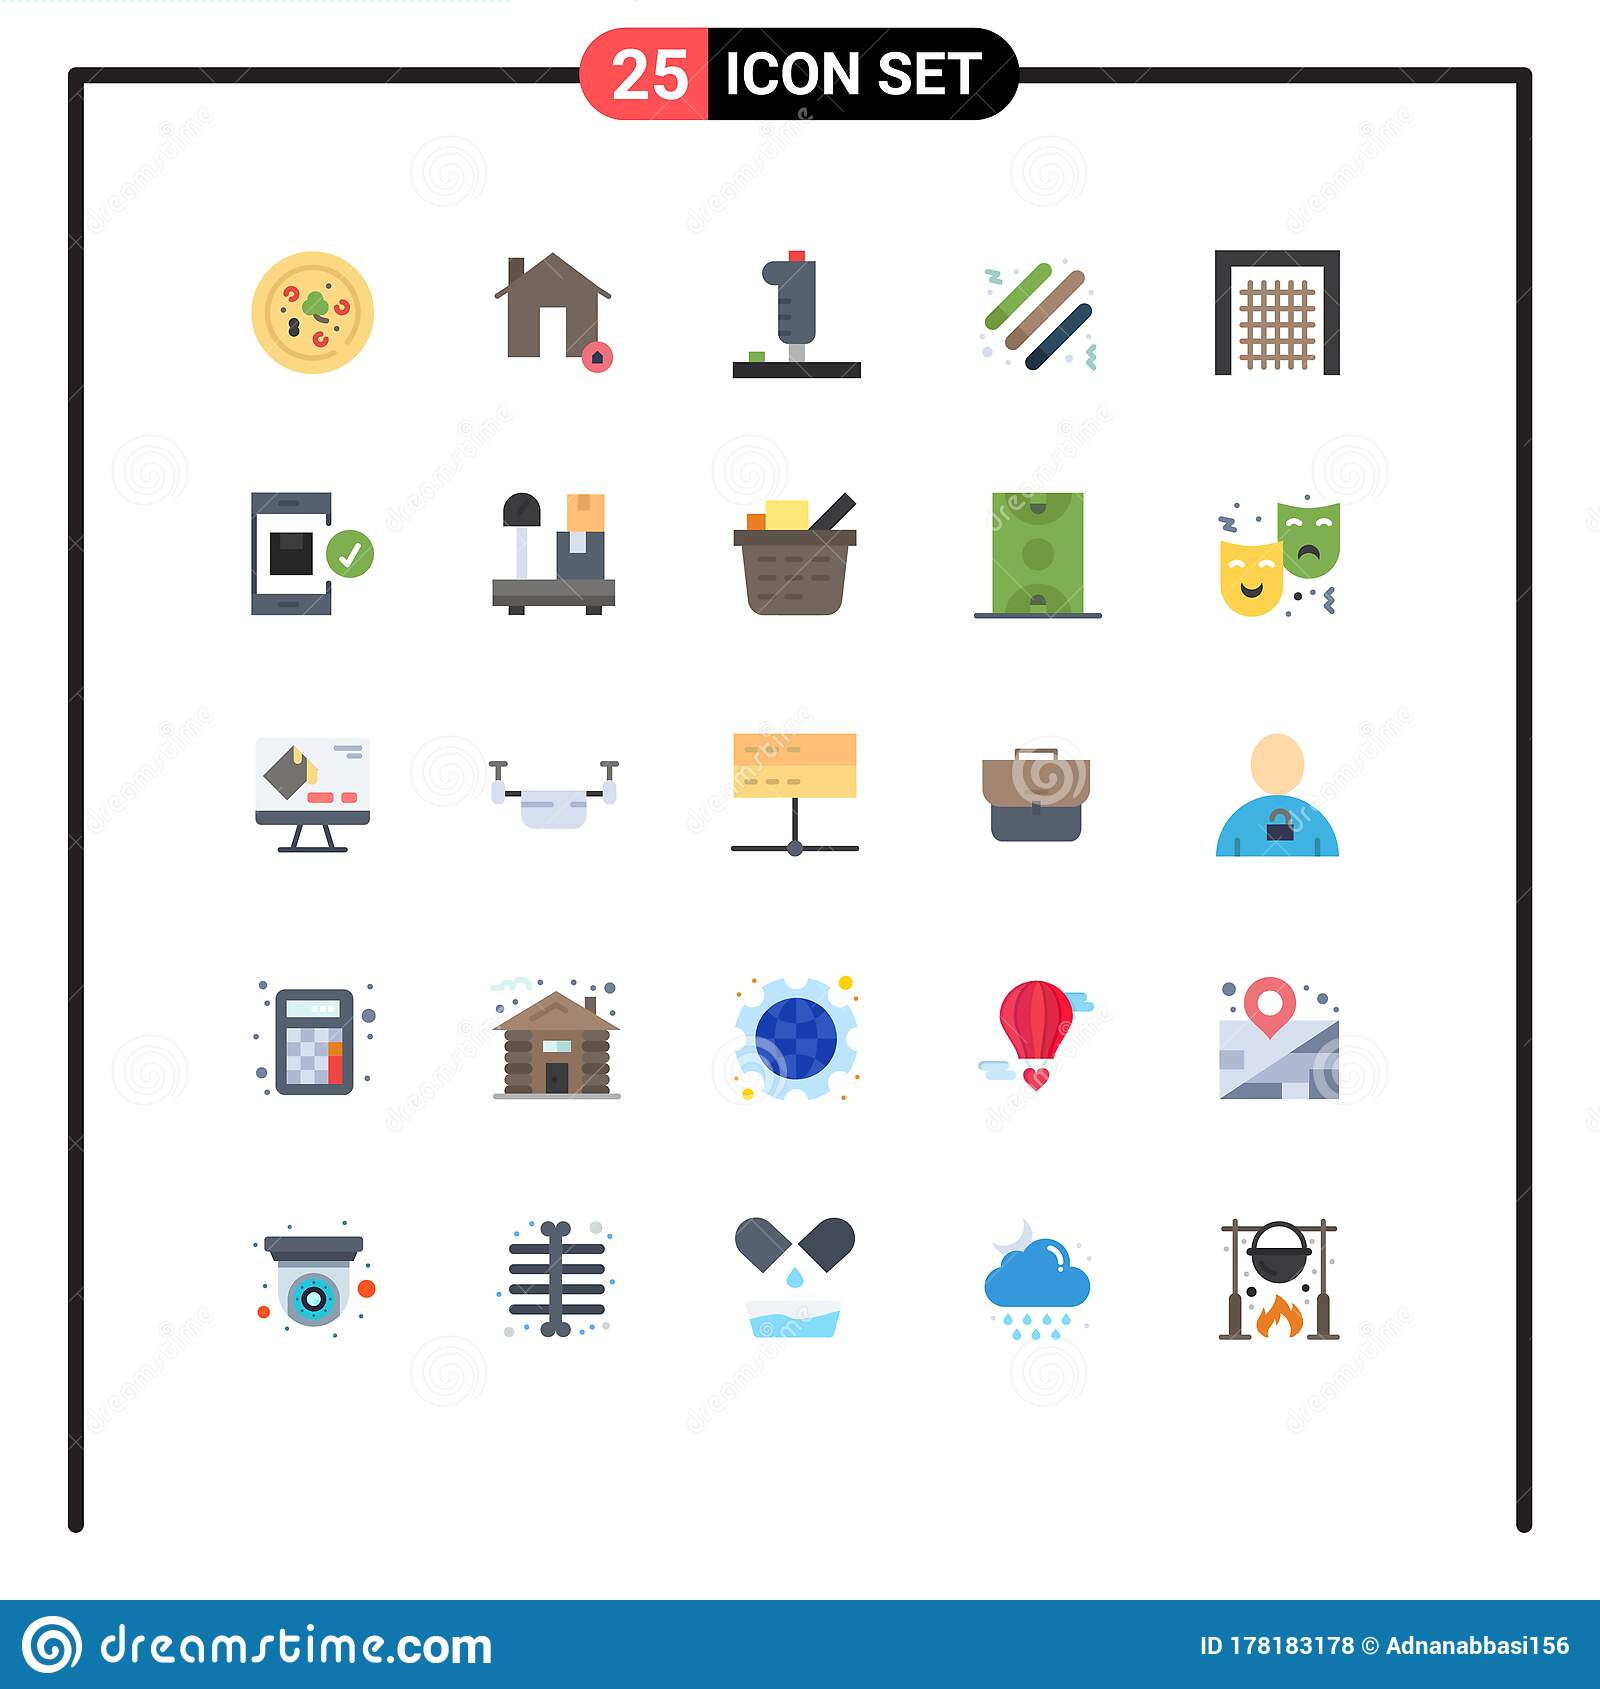 User Interface Pack Of 25 Basic Flat Colors Of Goal Light Stick Controller Party Drum Stock Vector Illustration Of Application Gate 178183178